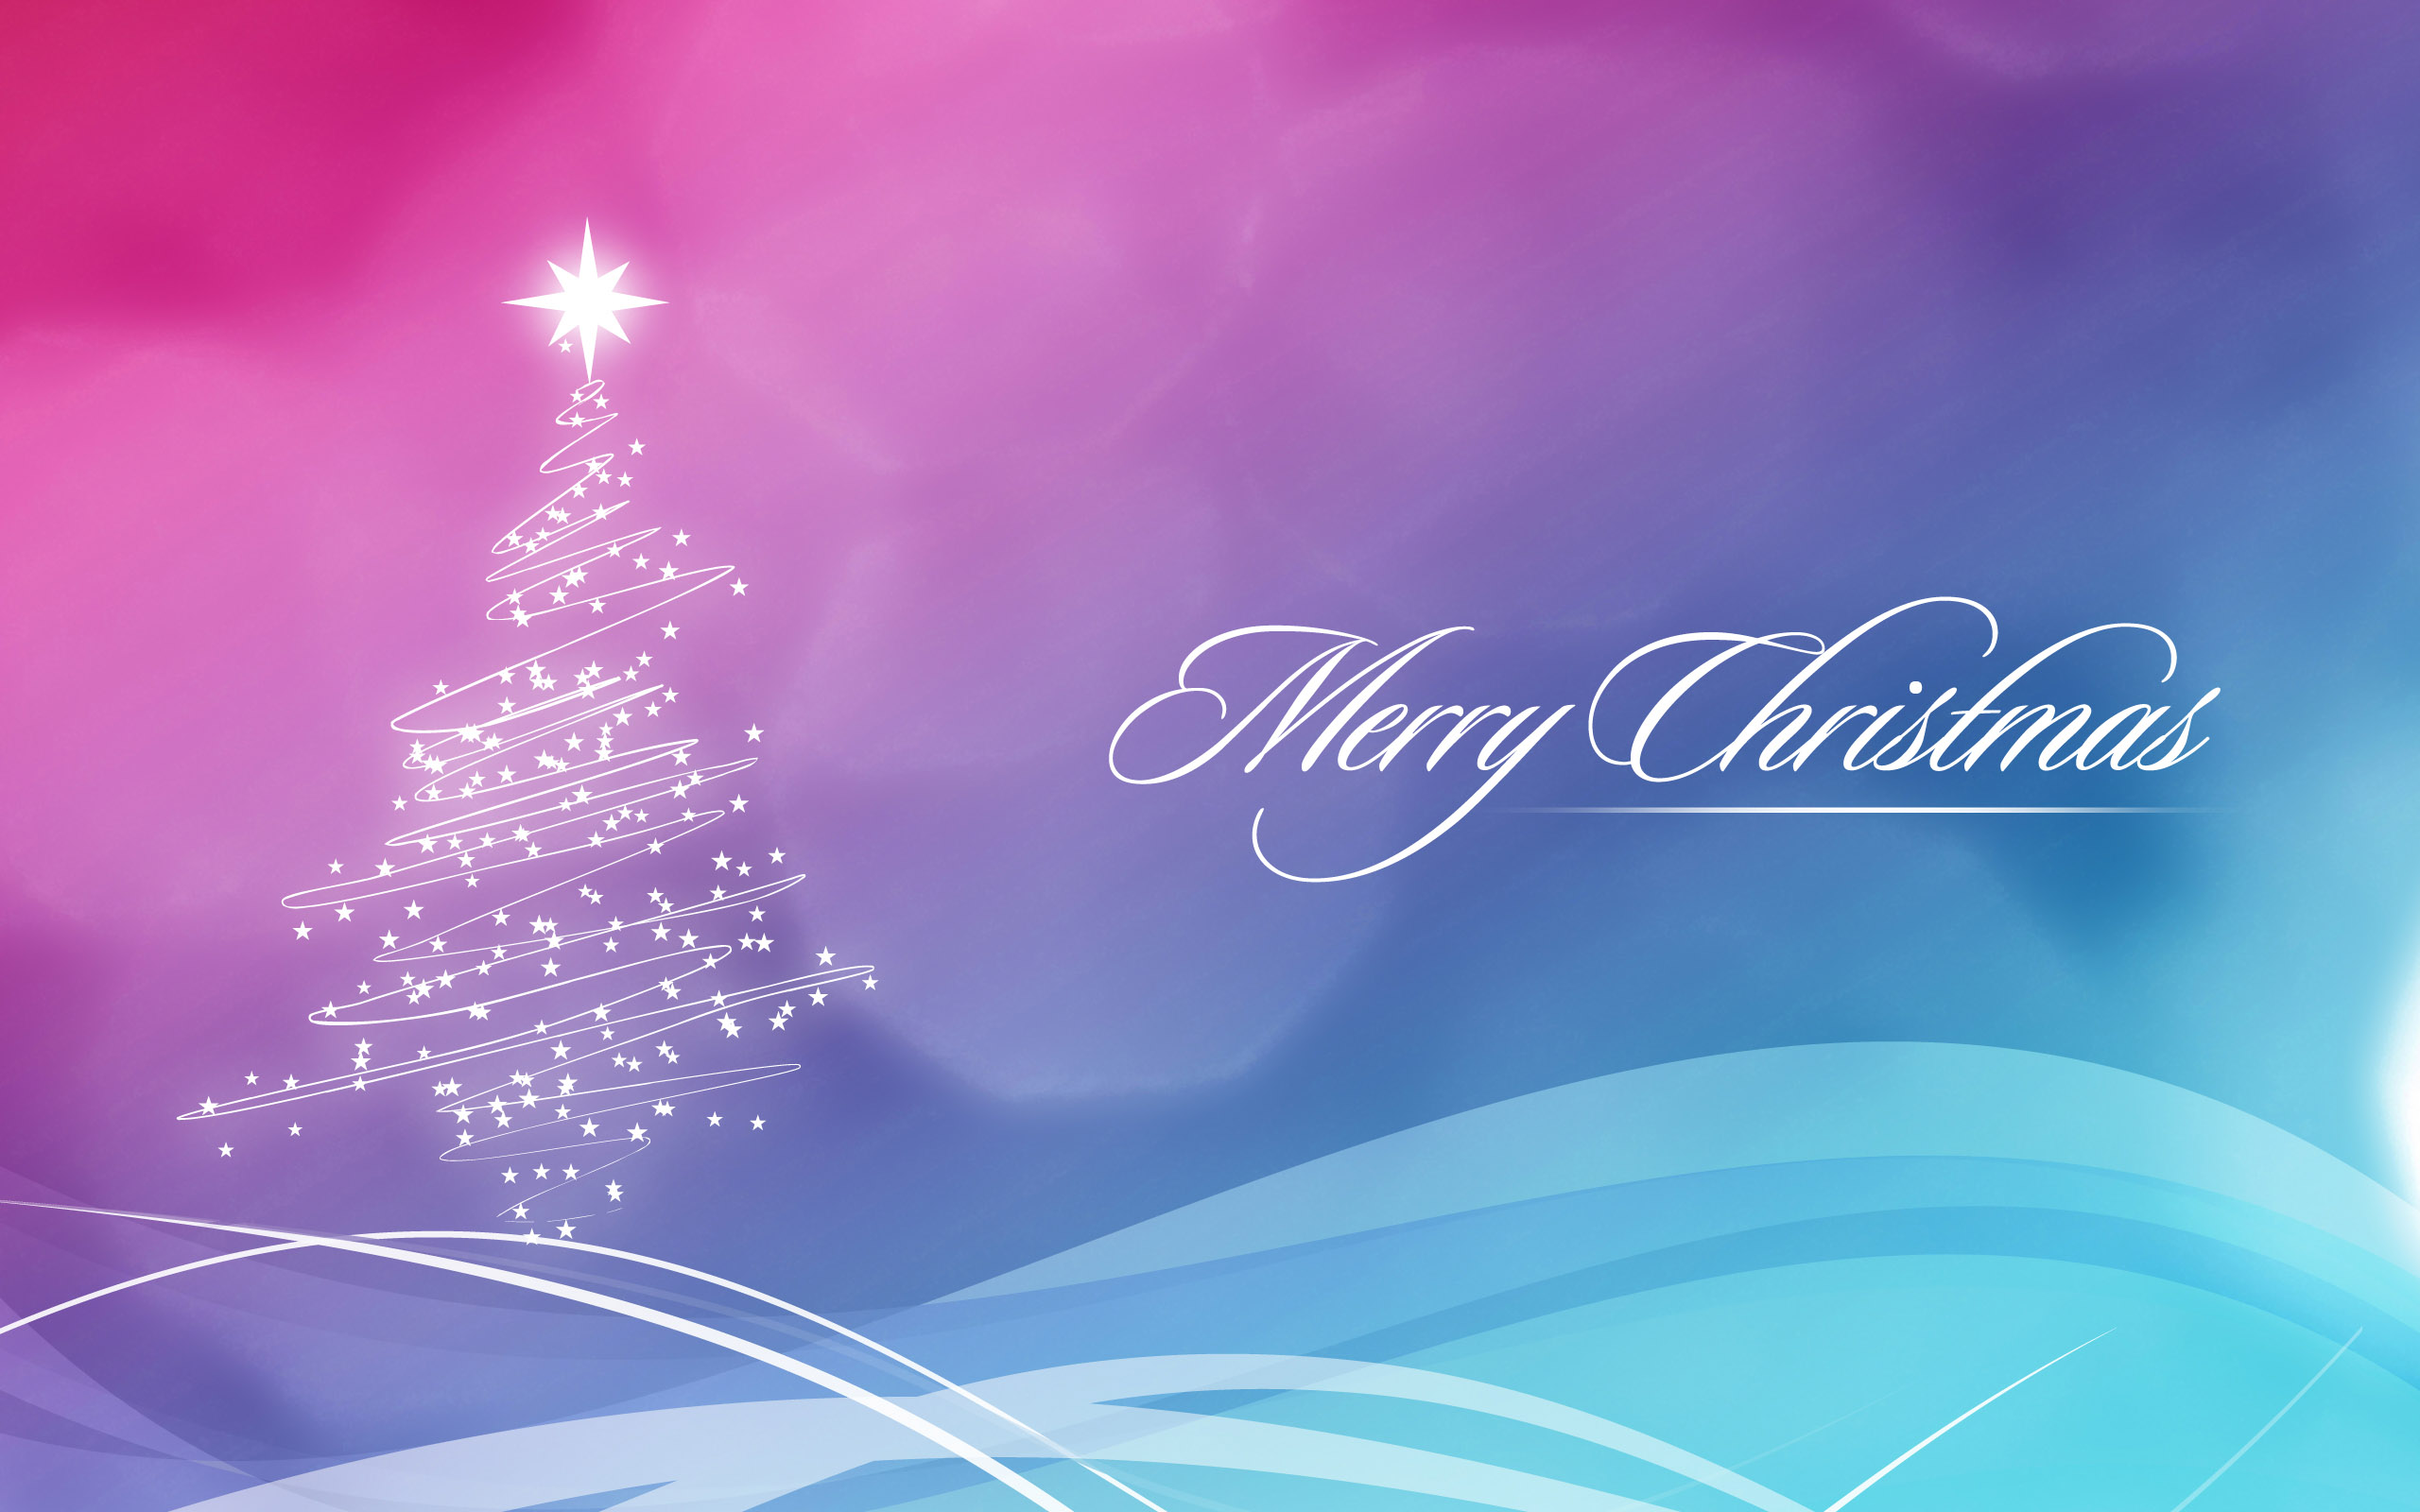 Free christmas wallpapers hd quality collection